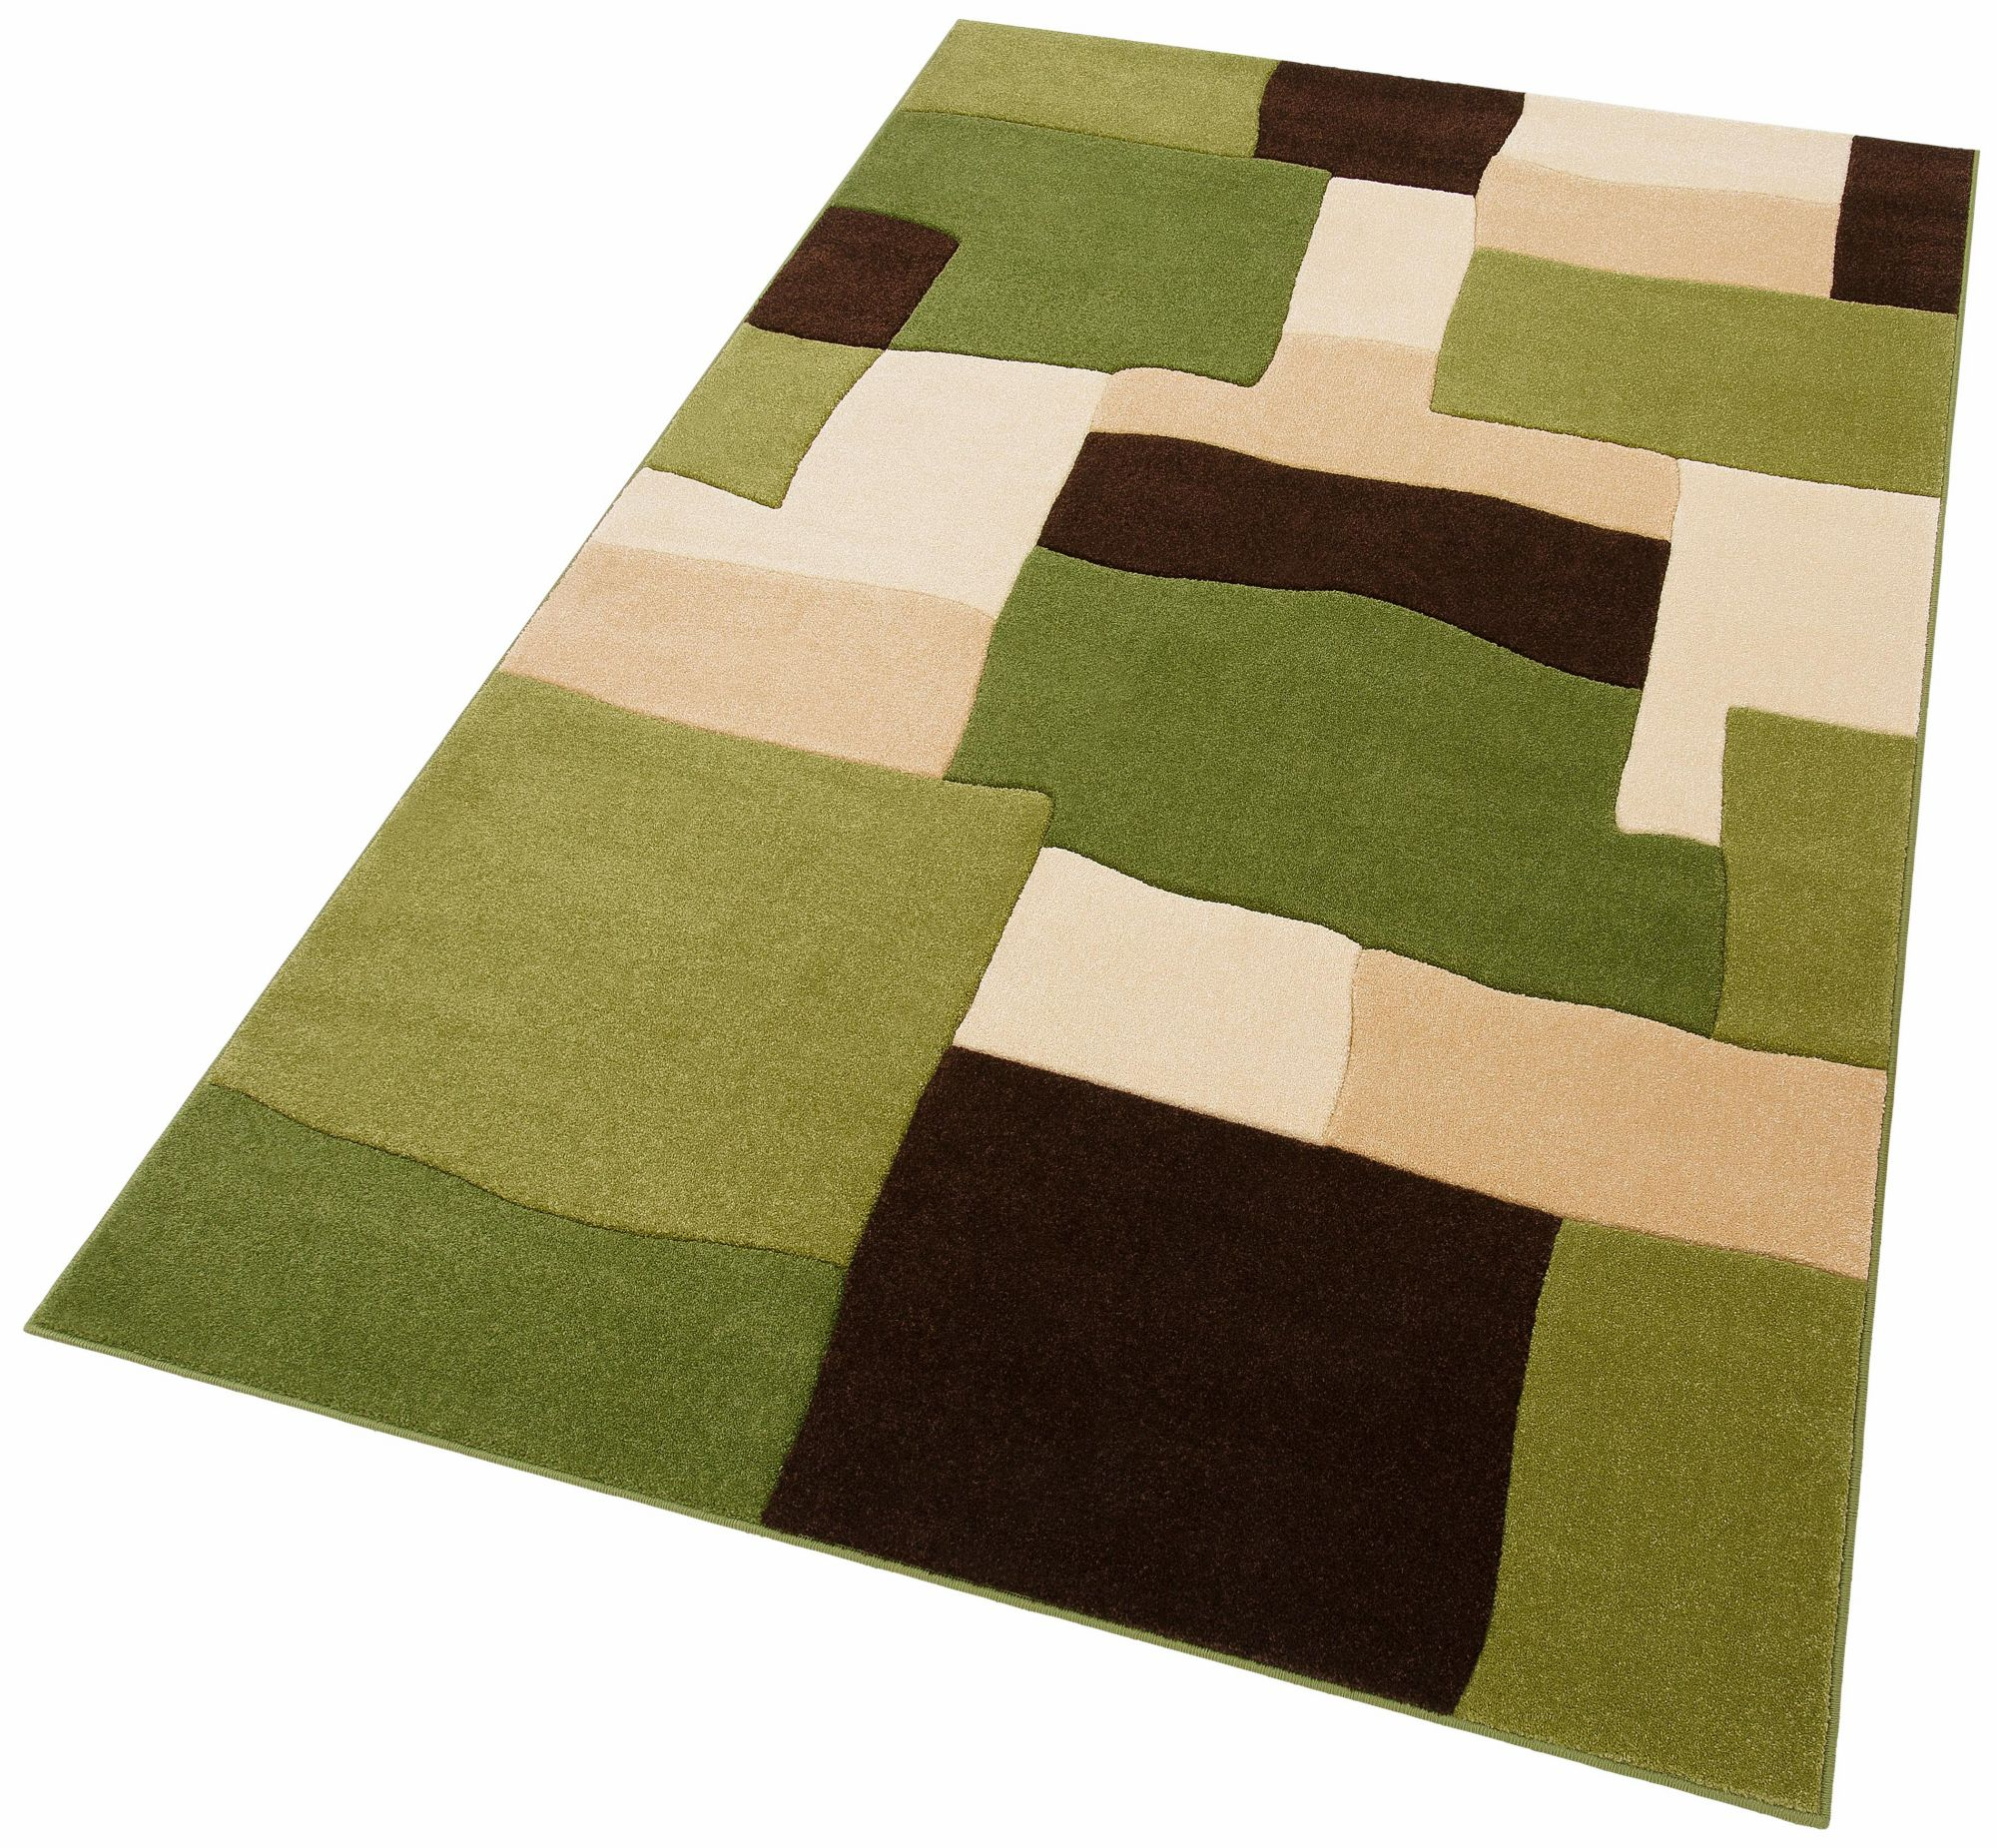 HOME AFFAIRE COLLECTION Teppich, Home affaire Collection, »Cora«, gewebt